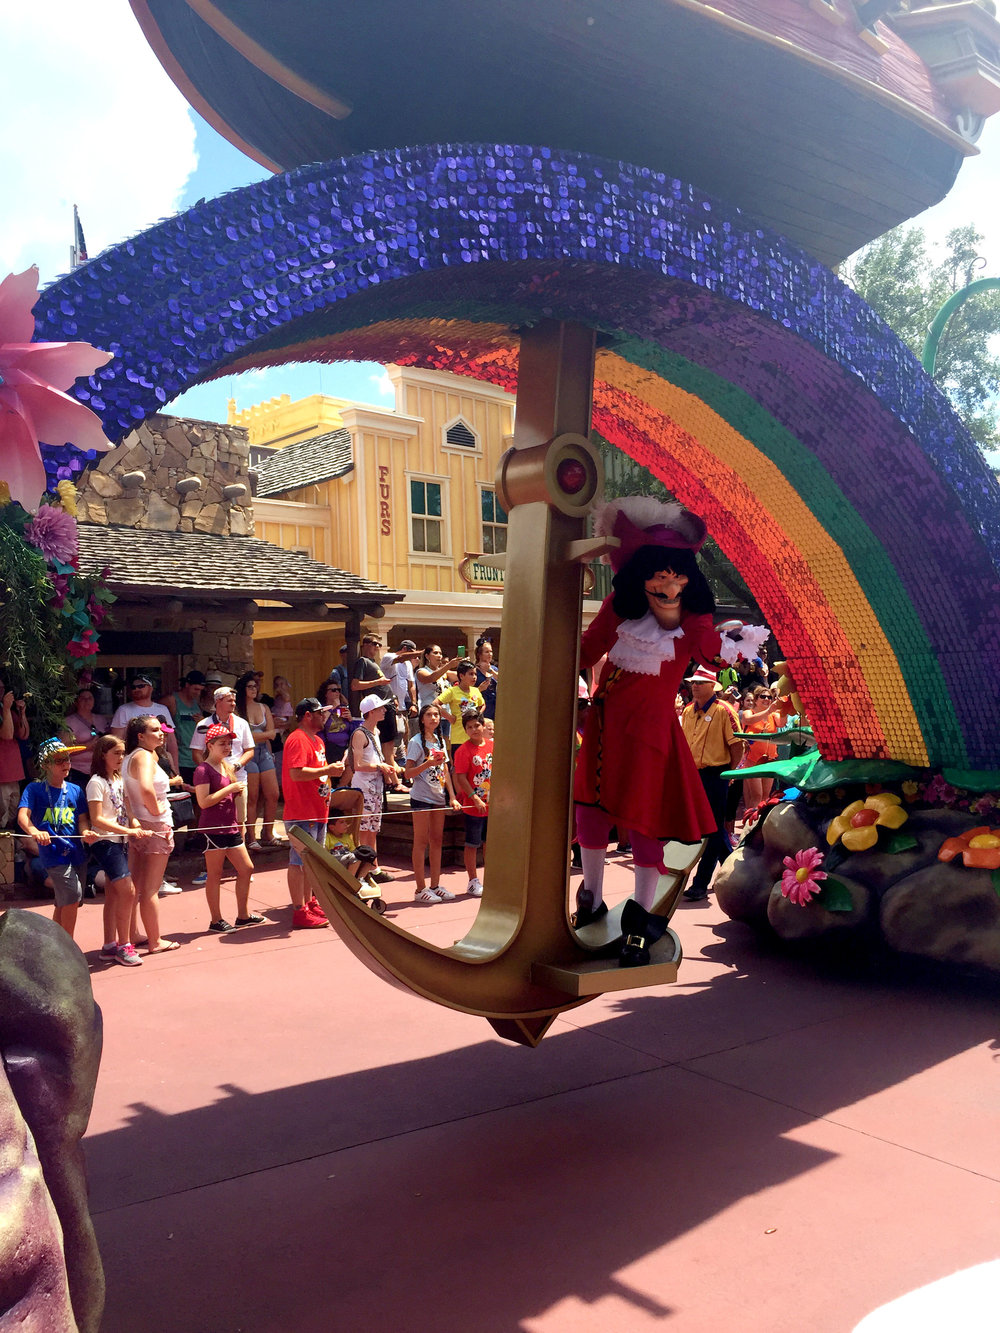 Captain Hook swings from a giant anchor under the shimmering, mosaic covered rainbow.